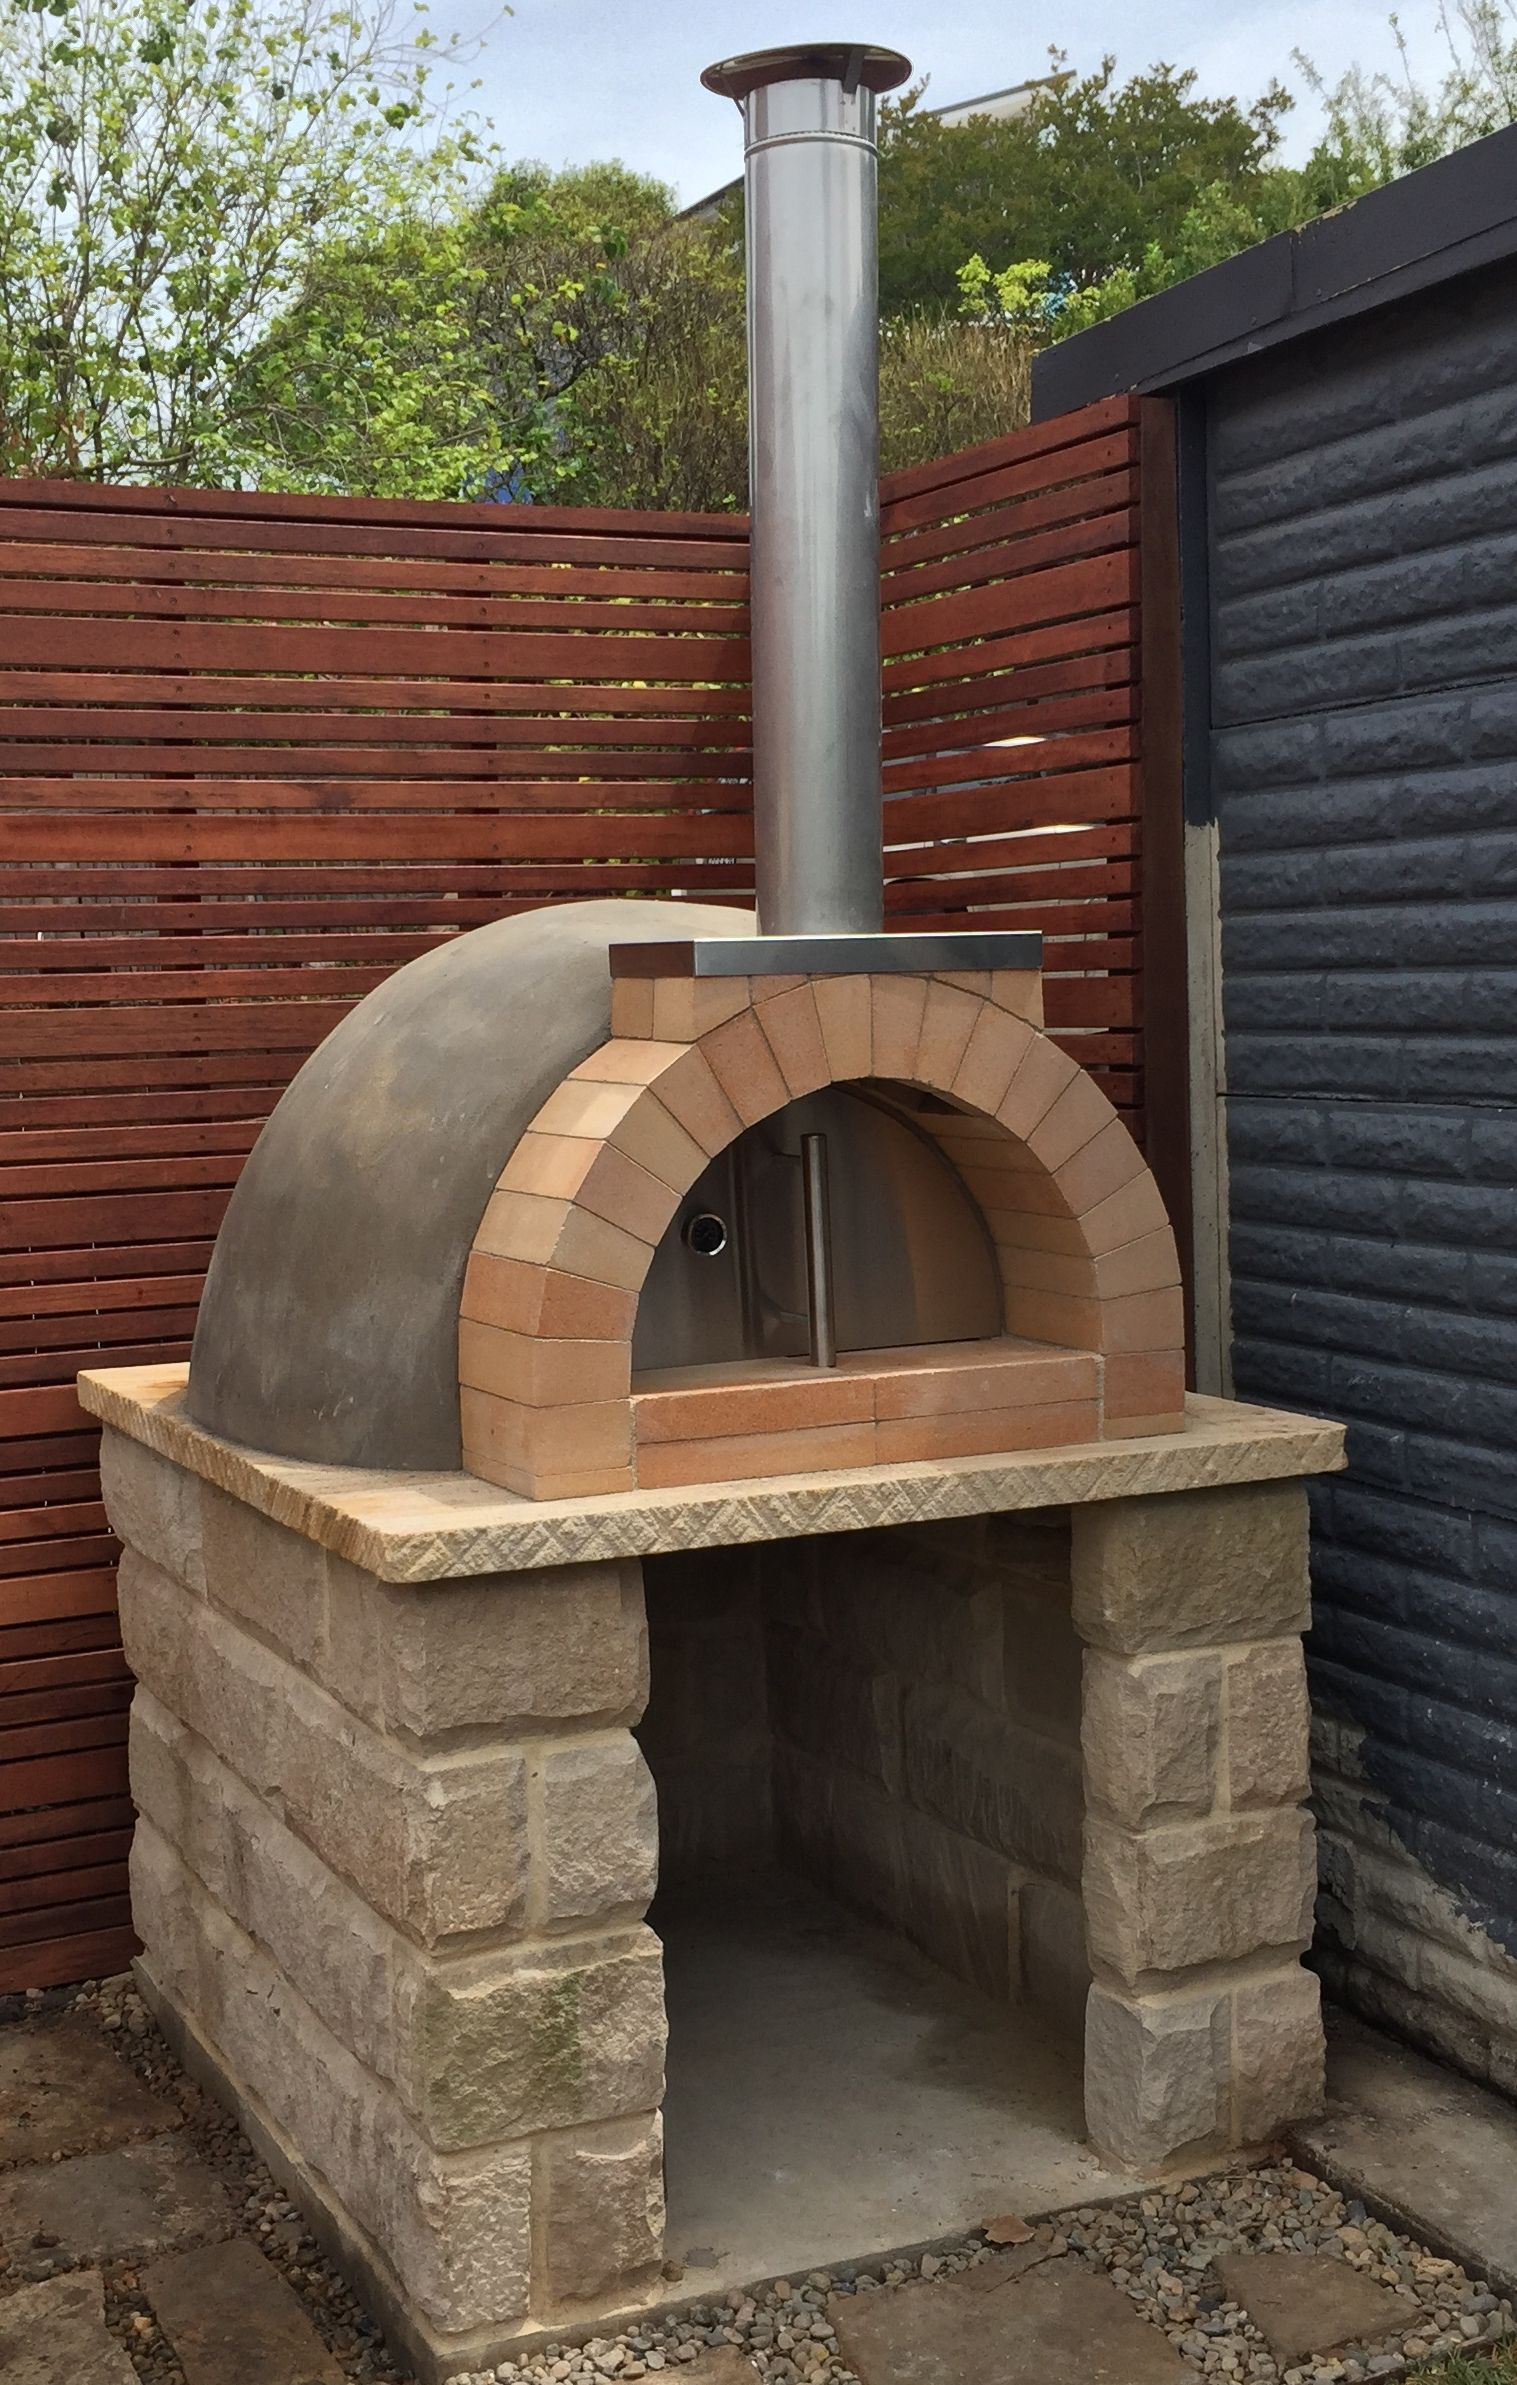 woodfired pizza oven images google search amigos pinte. Black Bedroom Furniture Sets. Home Design Ideas